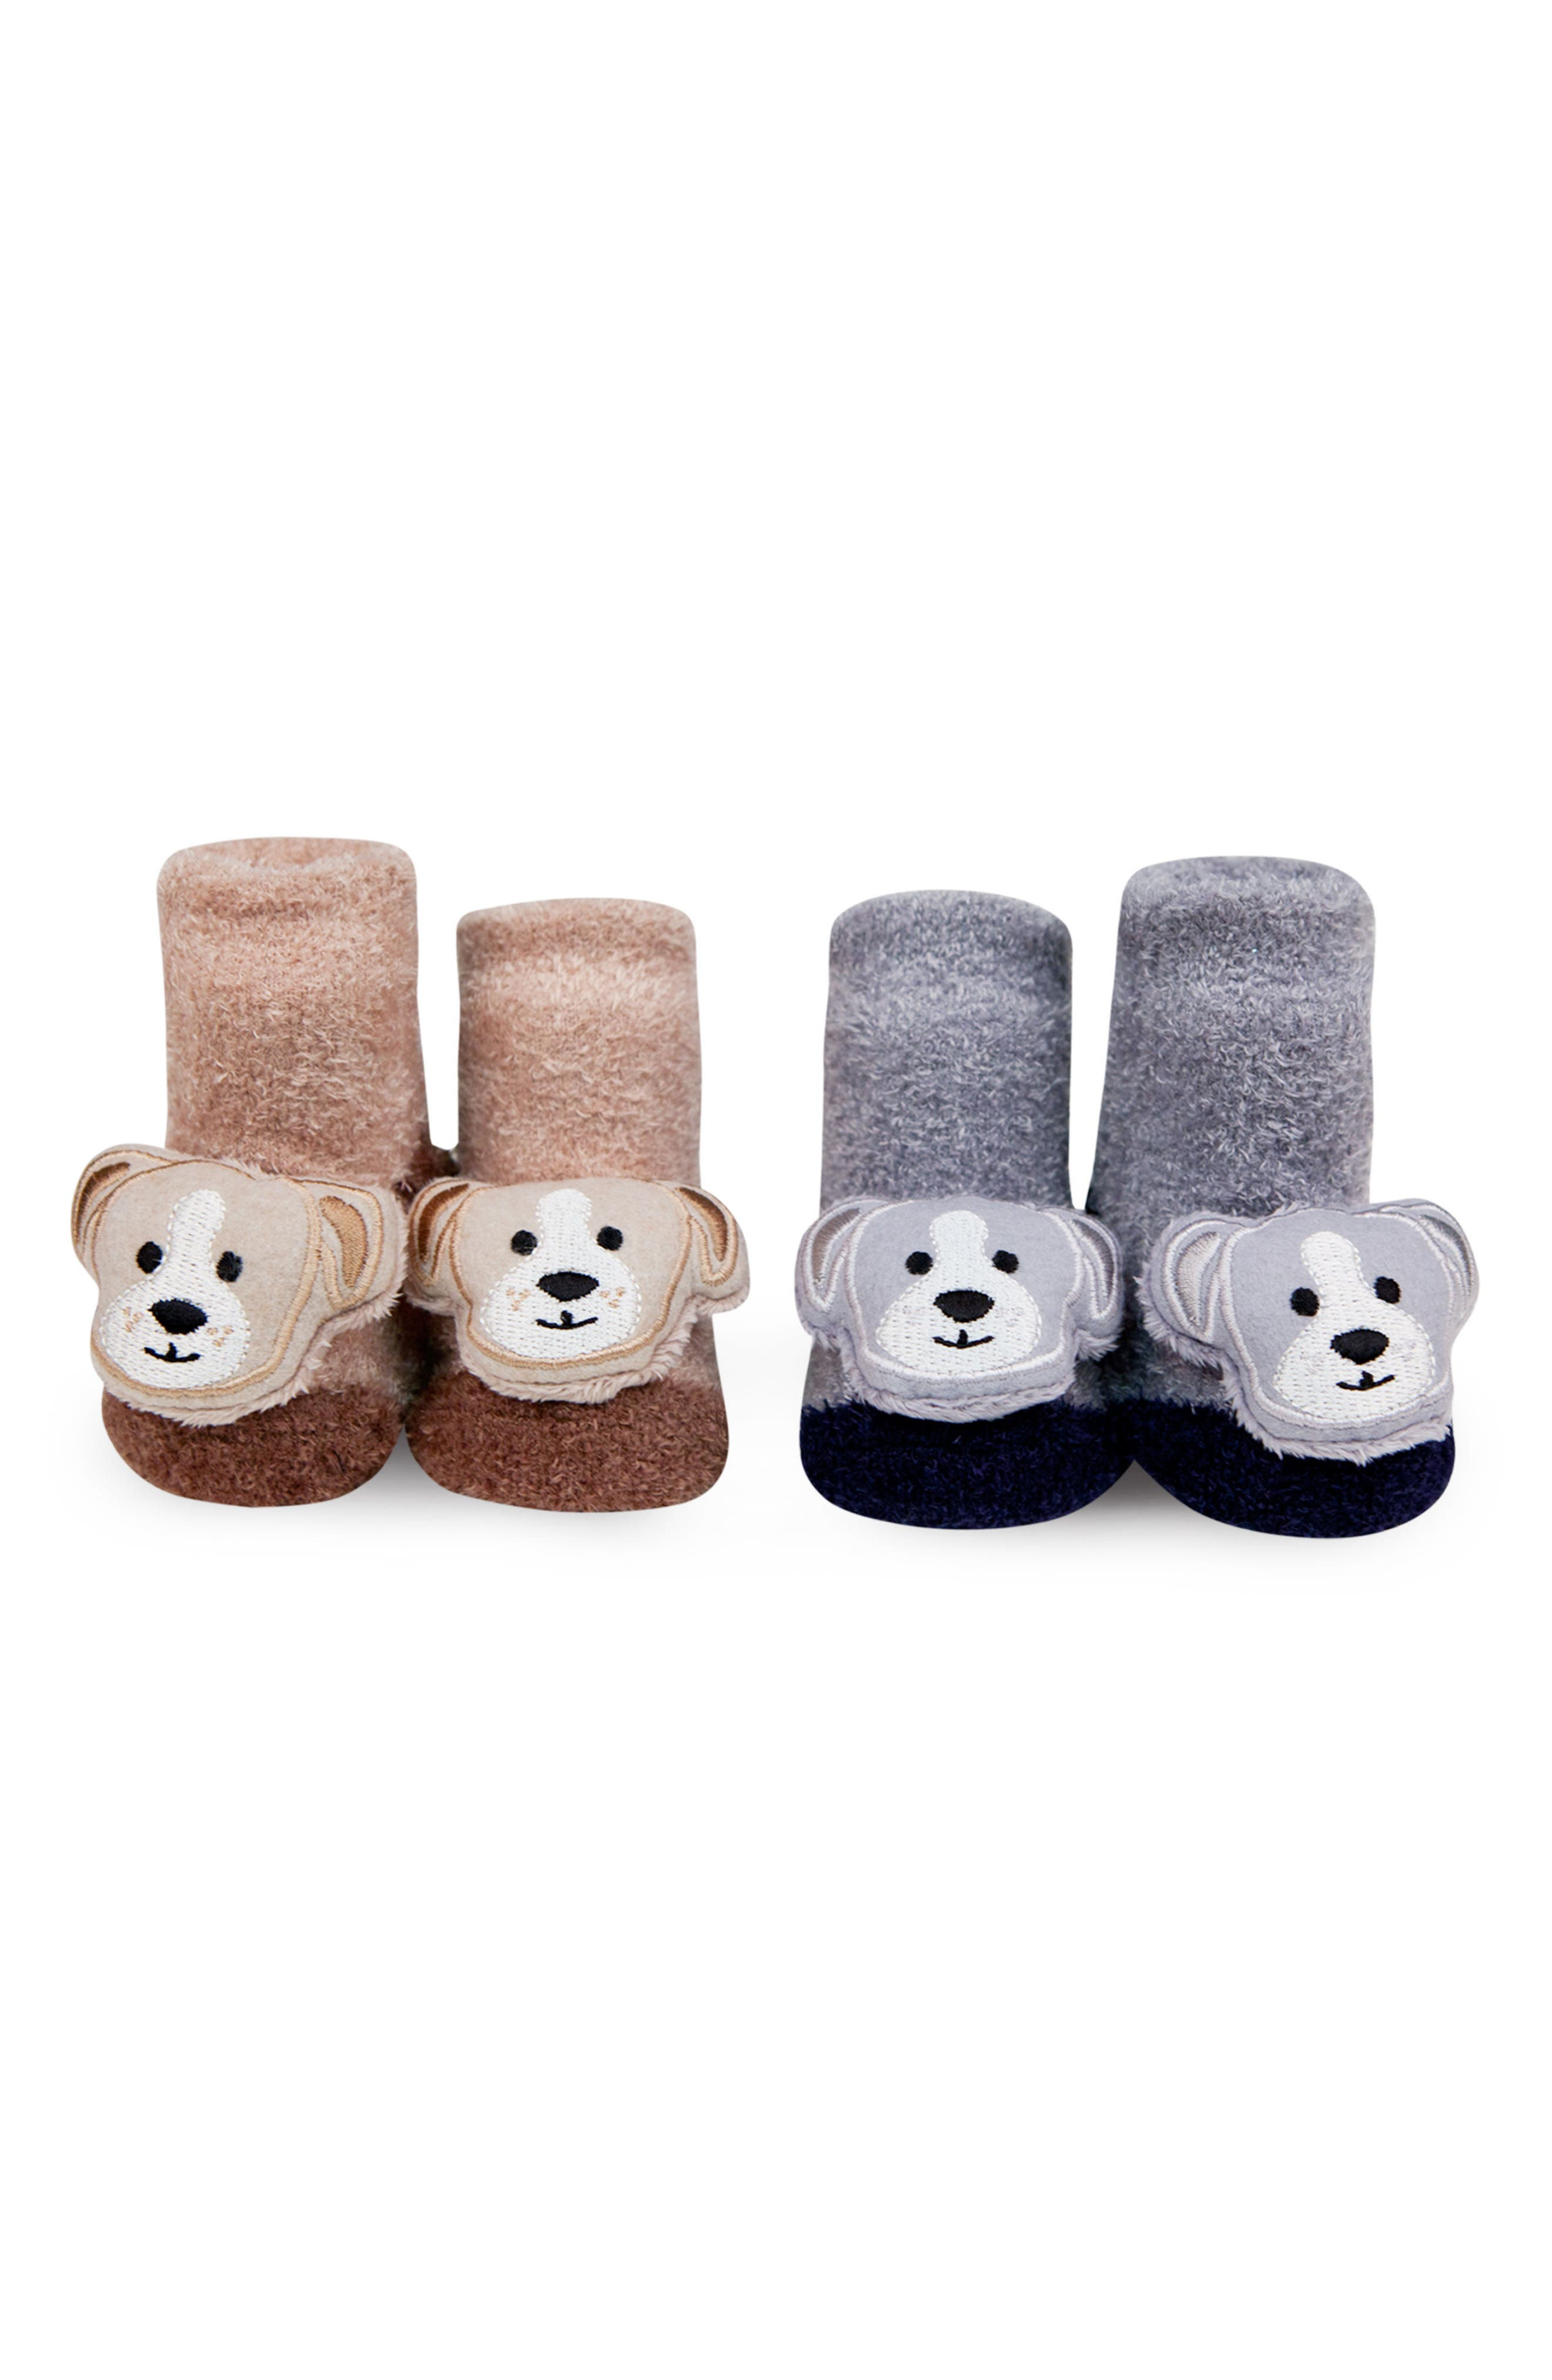 2-Pack Animal Rattle Socks,                         Main,                         color, 200